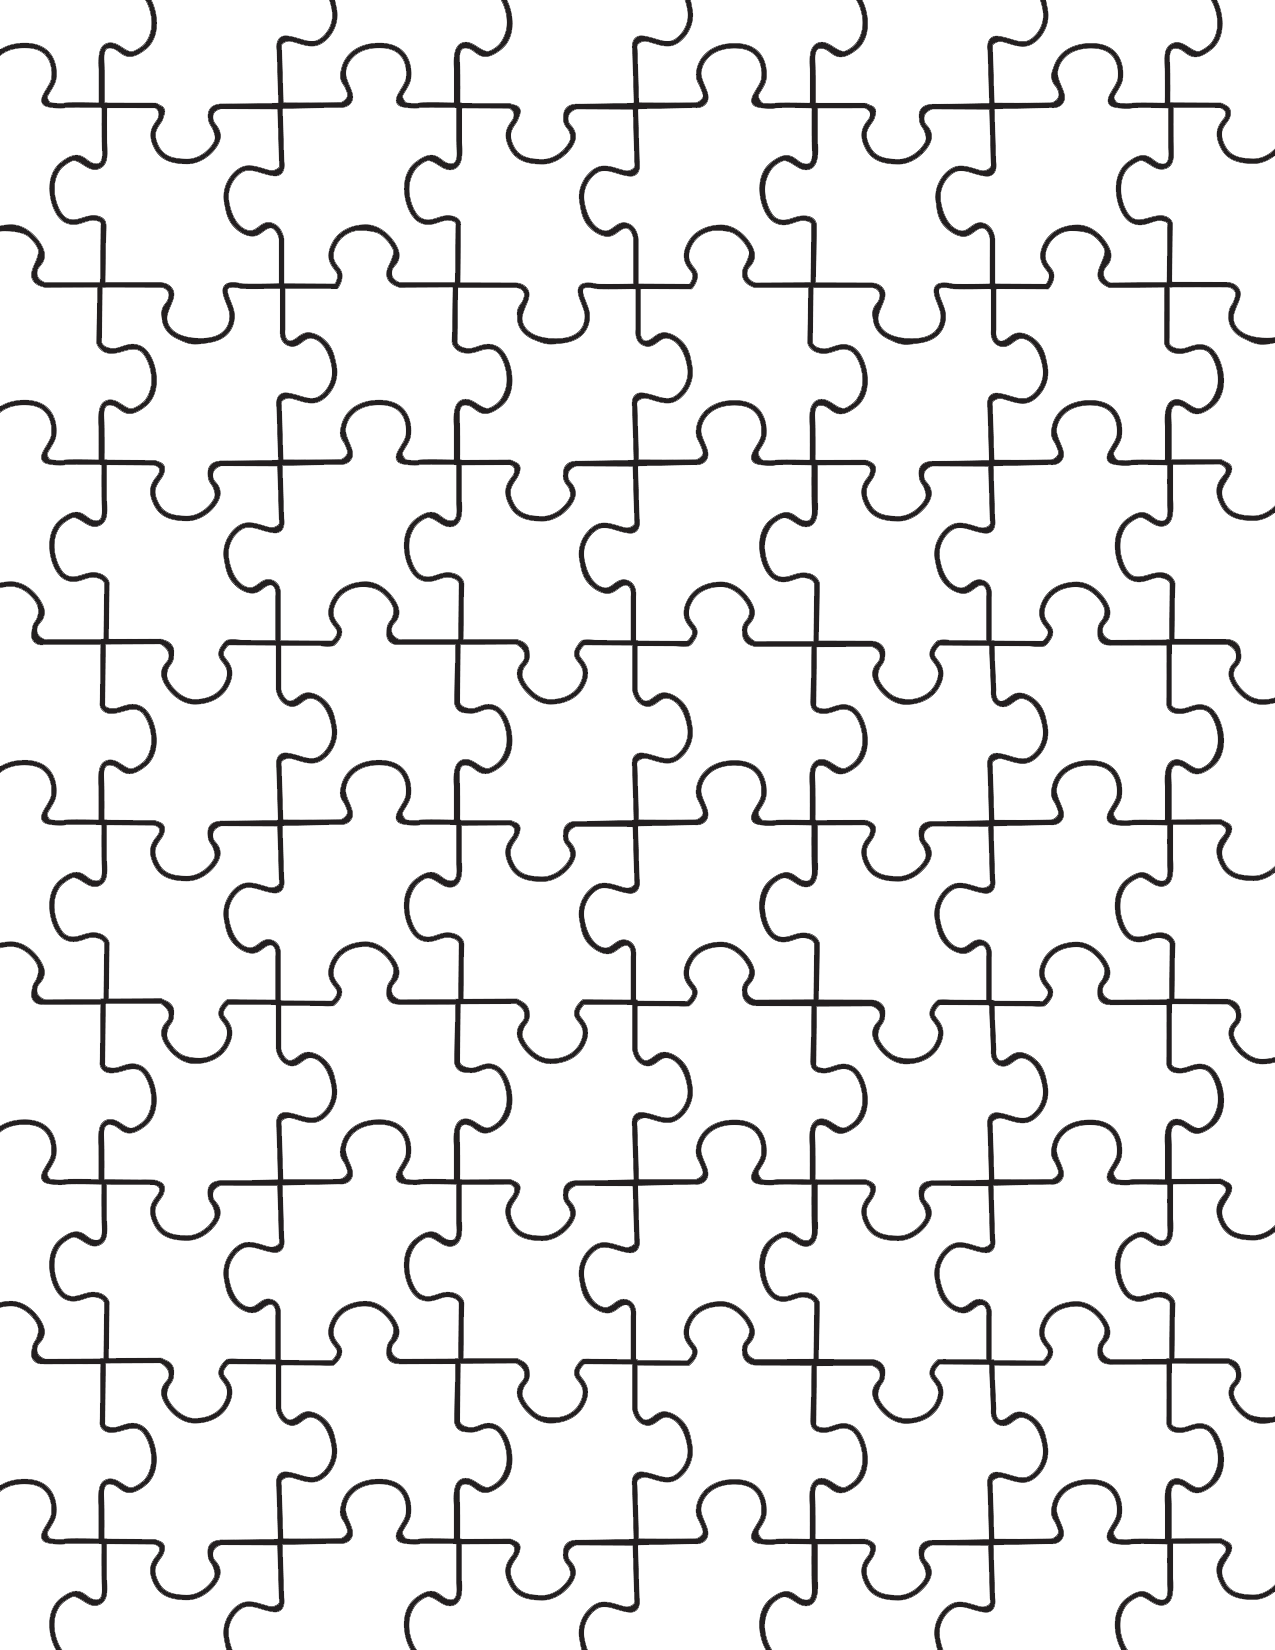 Blank puzzle png. Printable pieces template pinterest